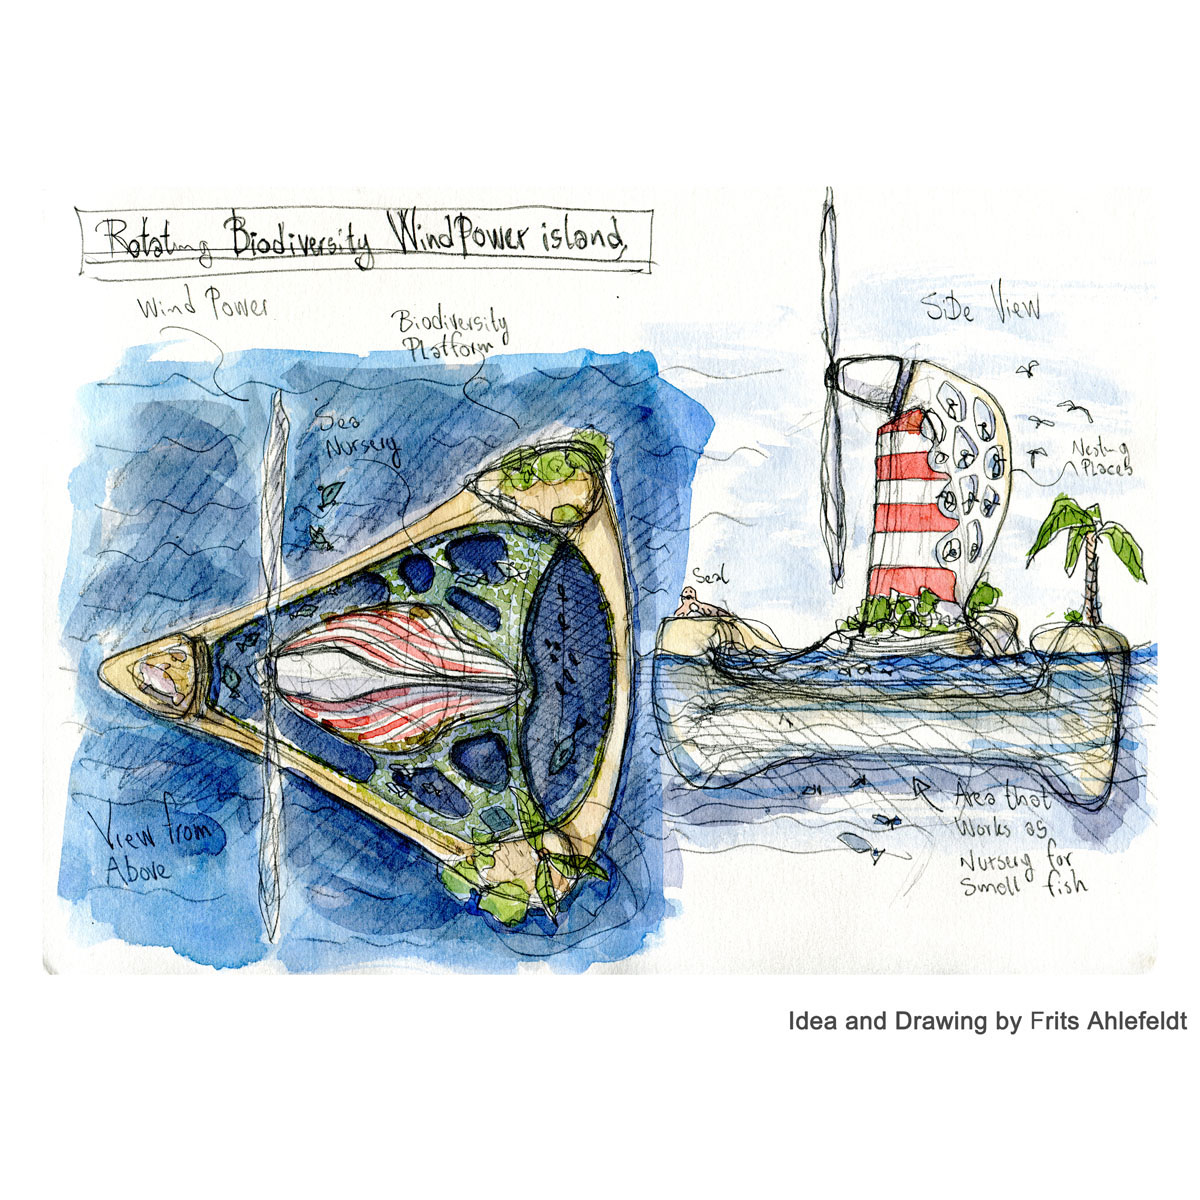 Floating biodiversity wind turbiine. off shore. Atoll version. Concept sketch watercolor and pencil. By Frits Ahlefeldt